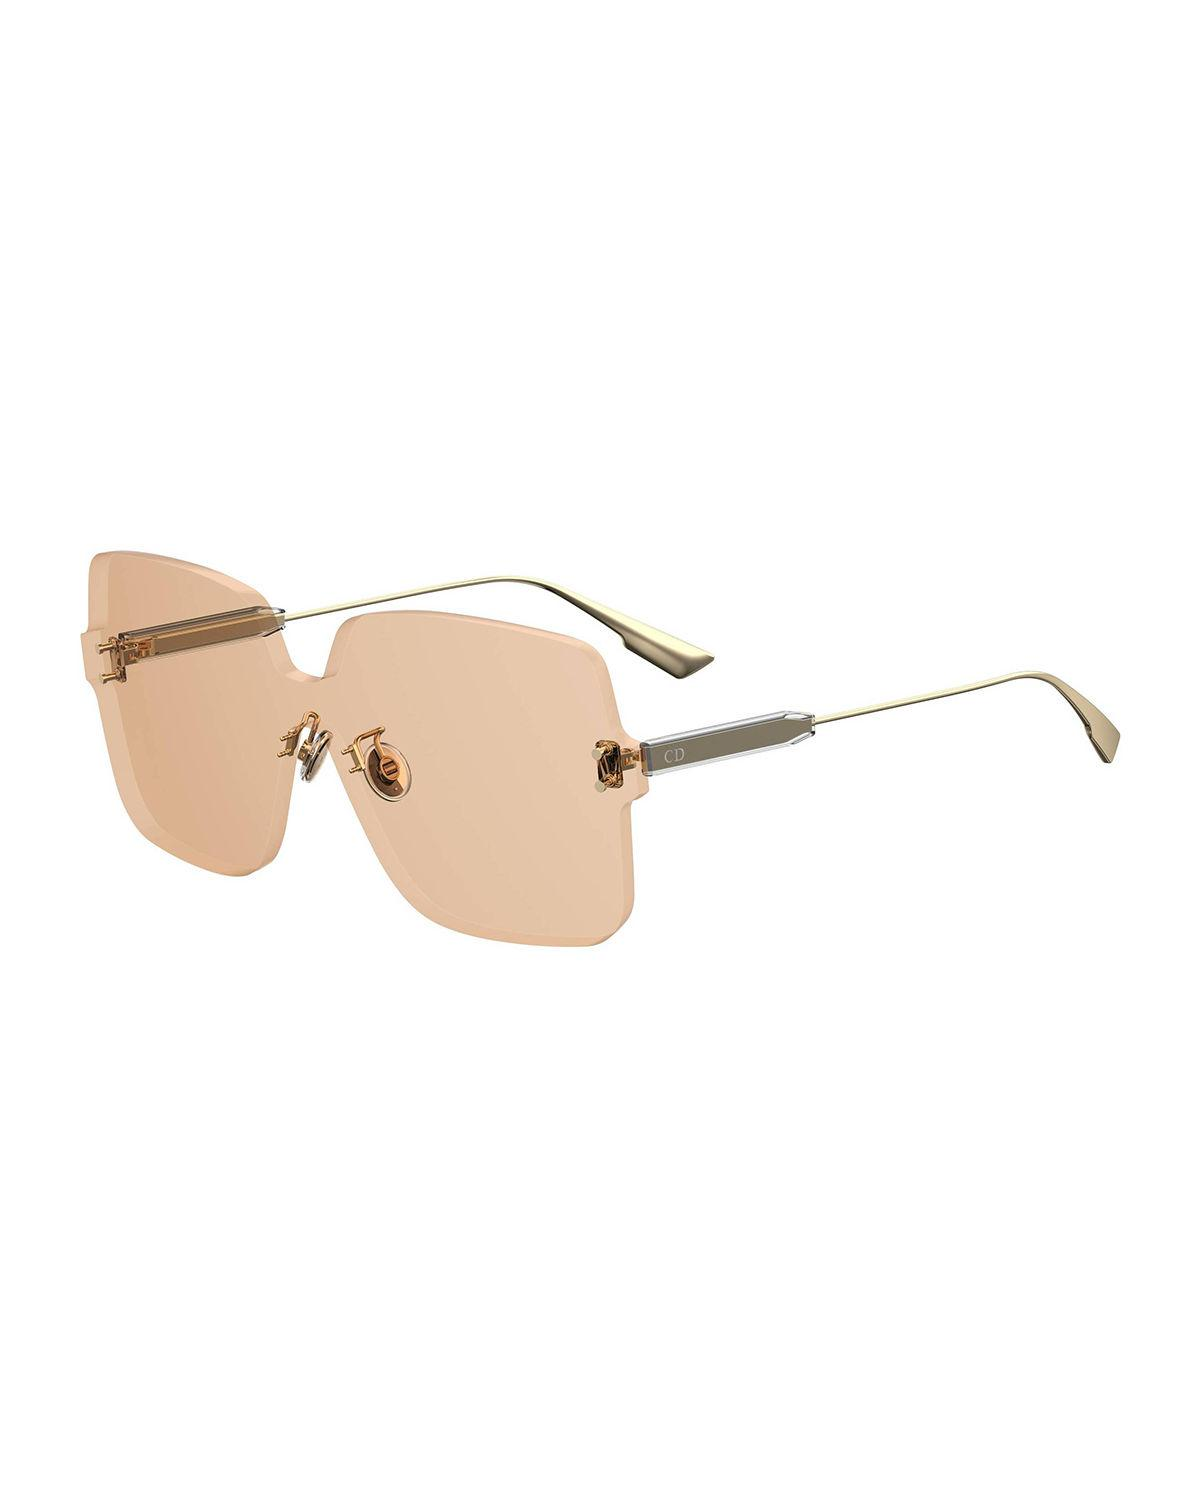 f1d794e2075 Dior Quake1 147Mm Square Rimless Shield Sunglasses - Nude In Pink ...